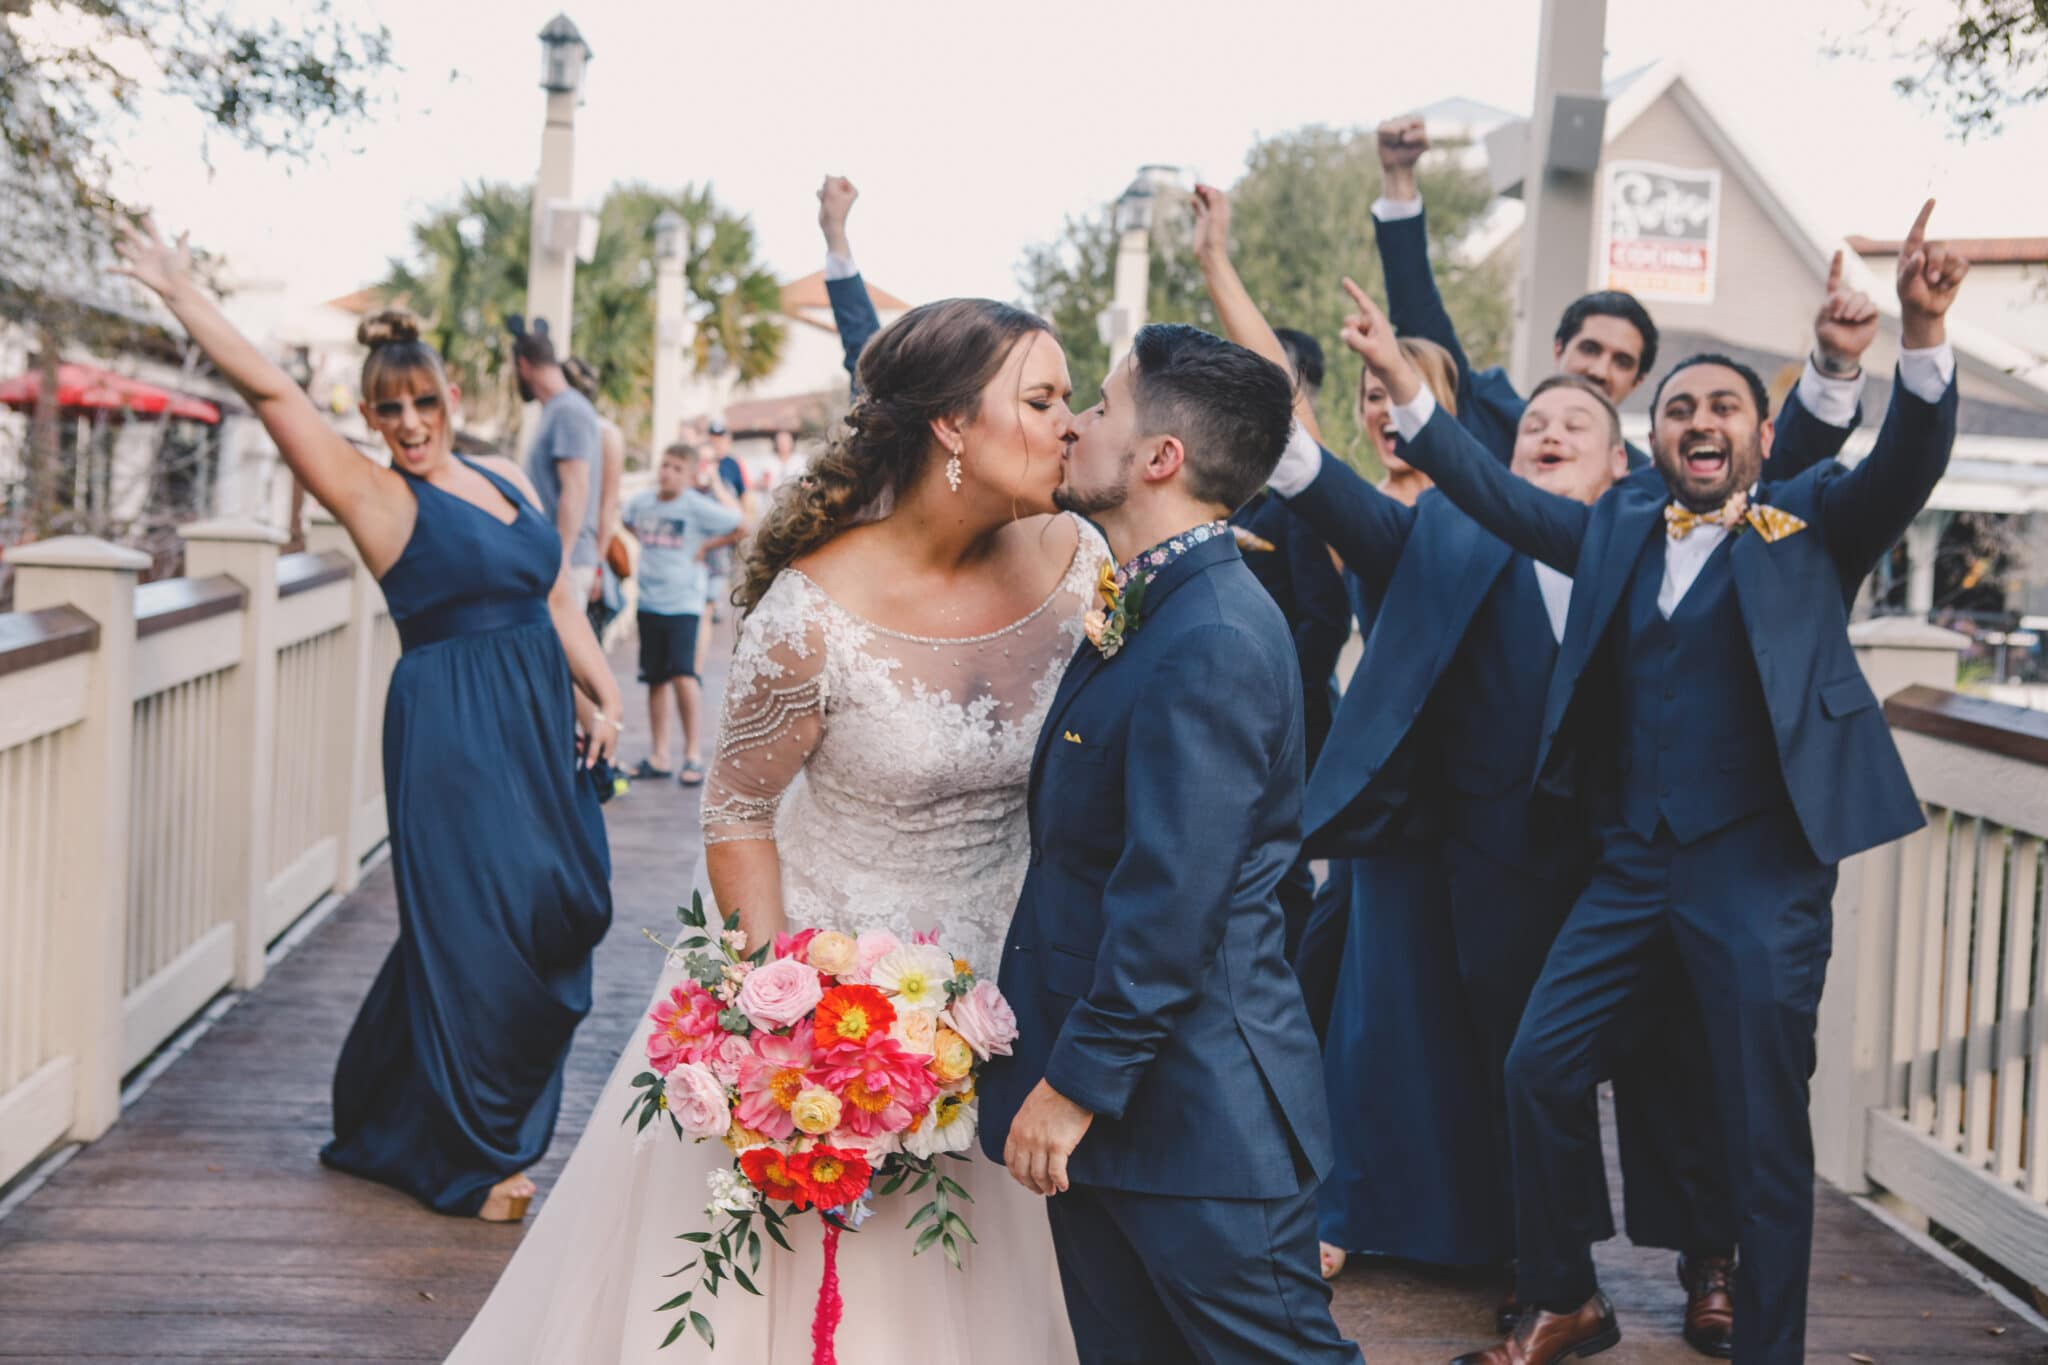 bride and groom kissing on boardwalk while bride holding bright colored bouquet in front of bridal party excited wearing navy blue attire